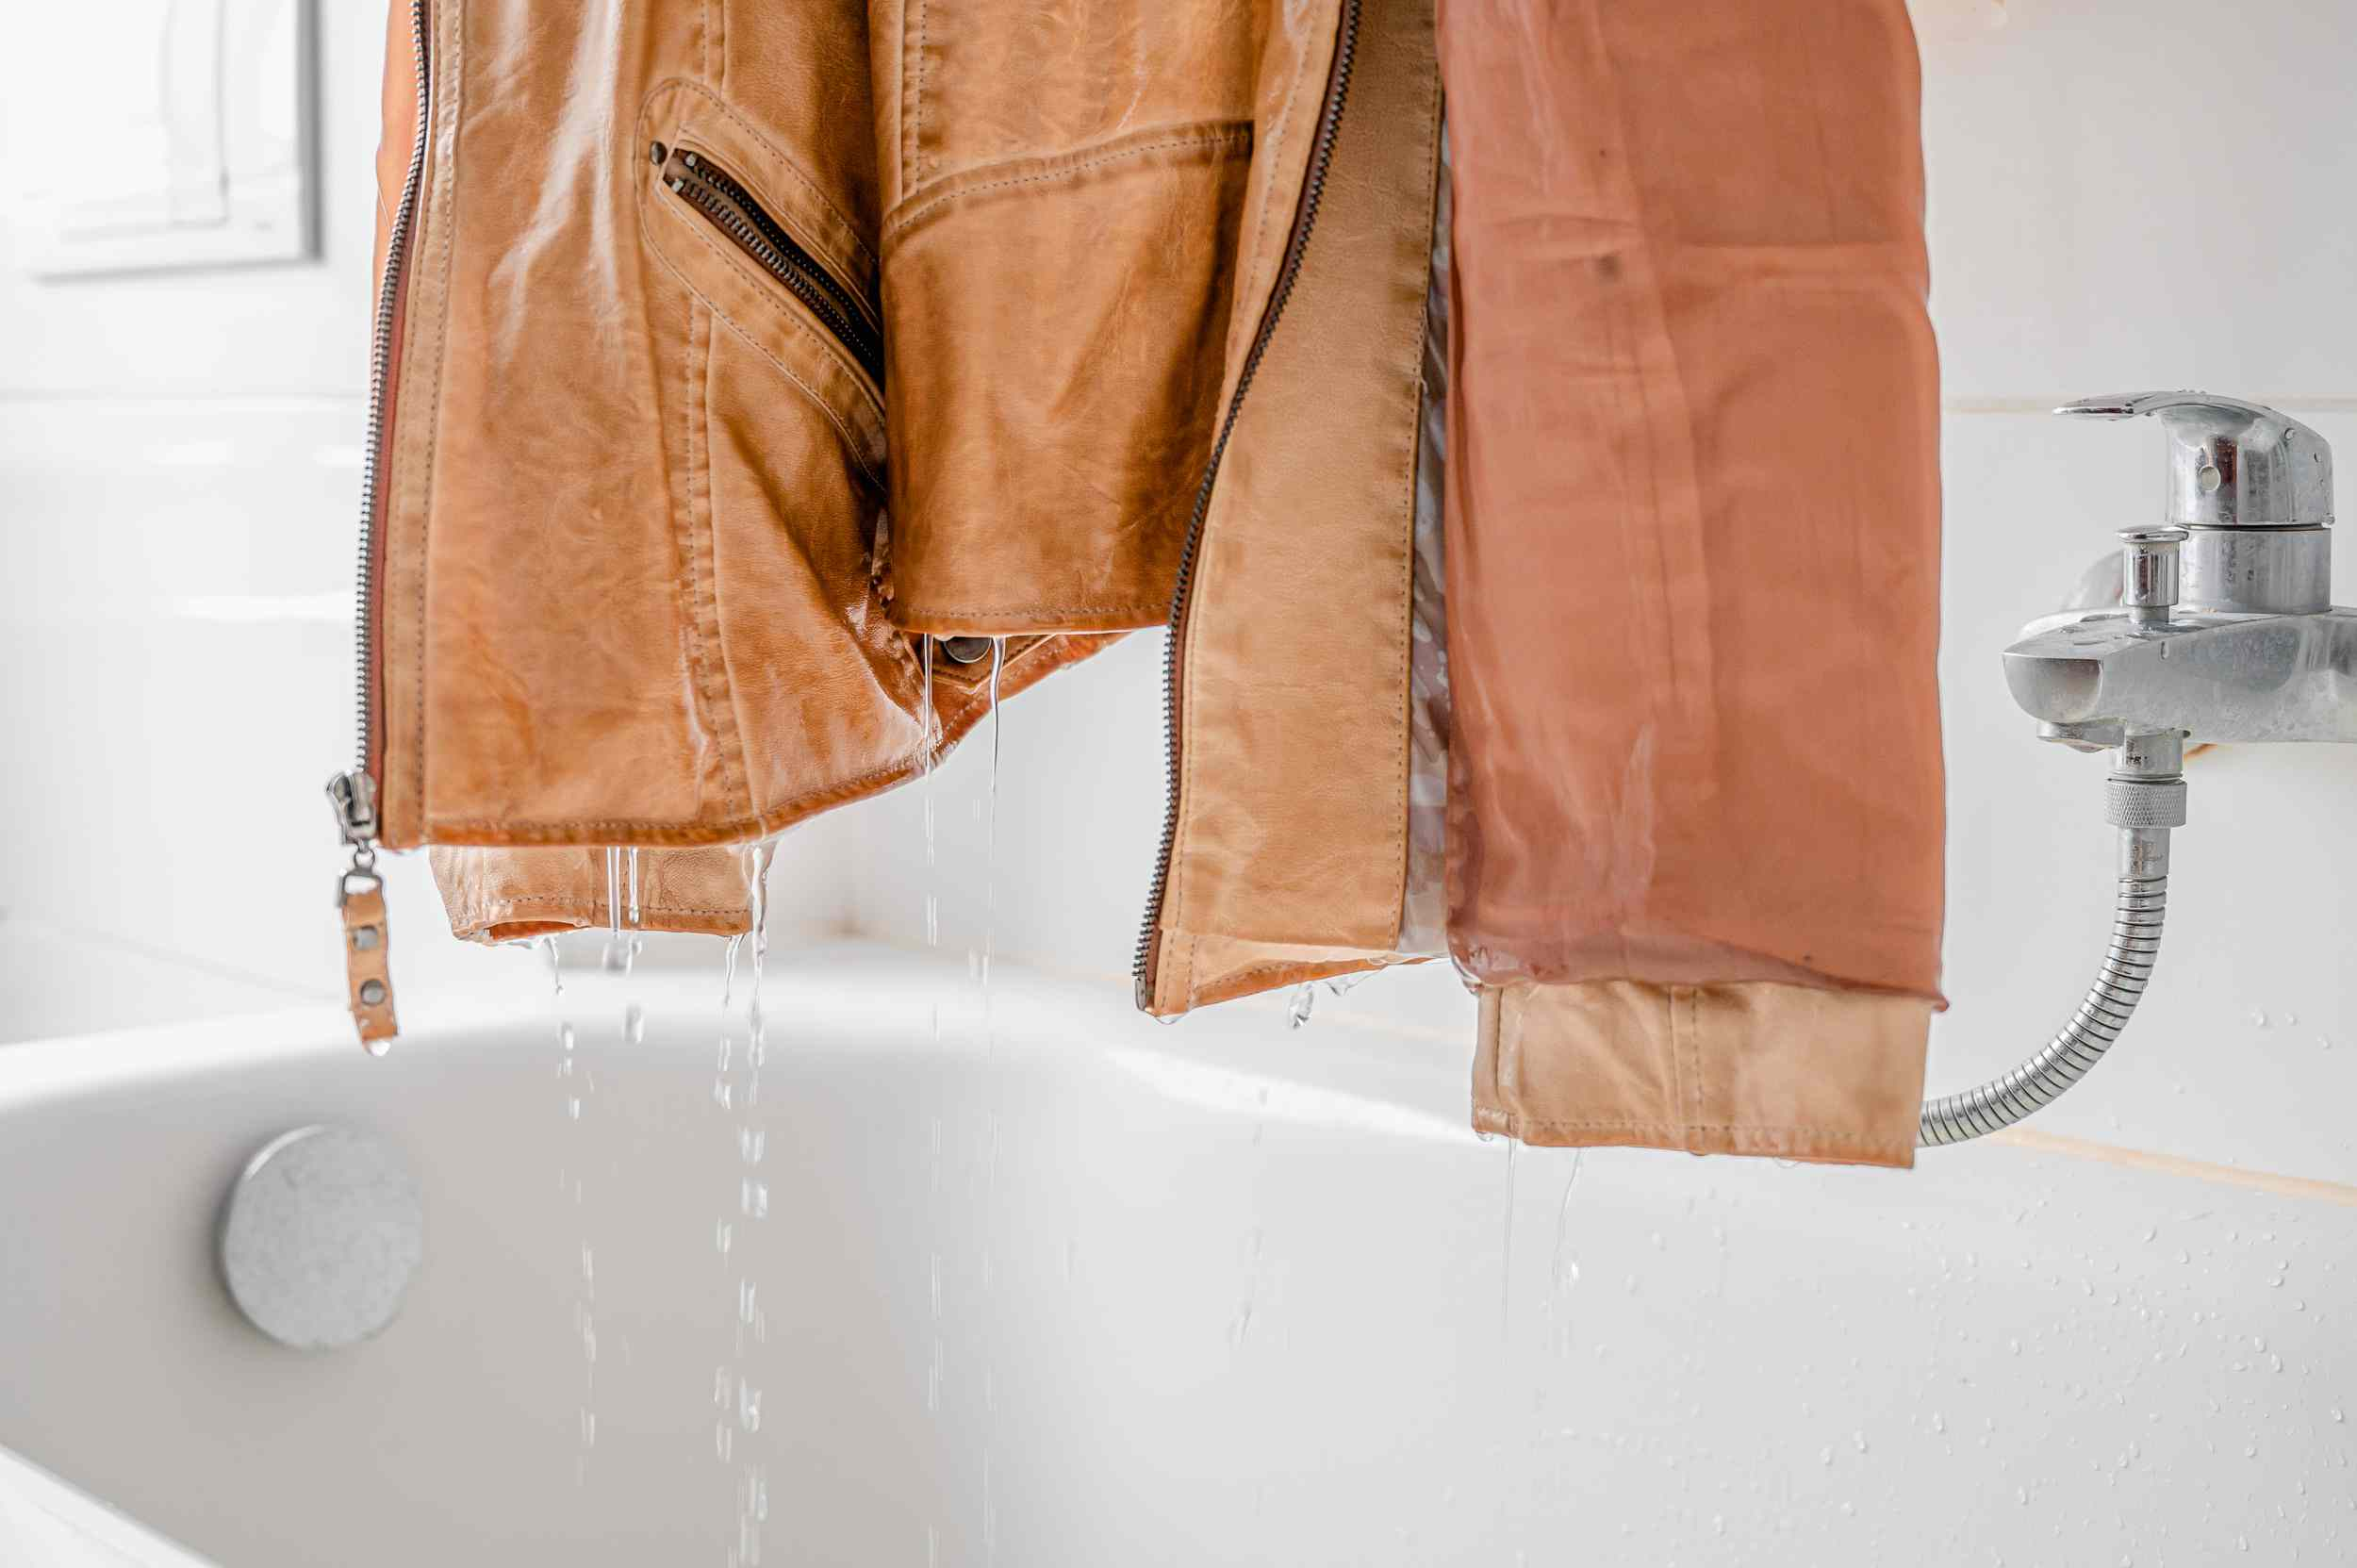 Letting the jacket drip dry over the tub